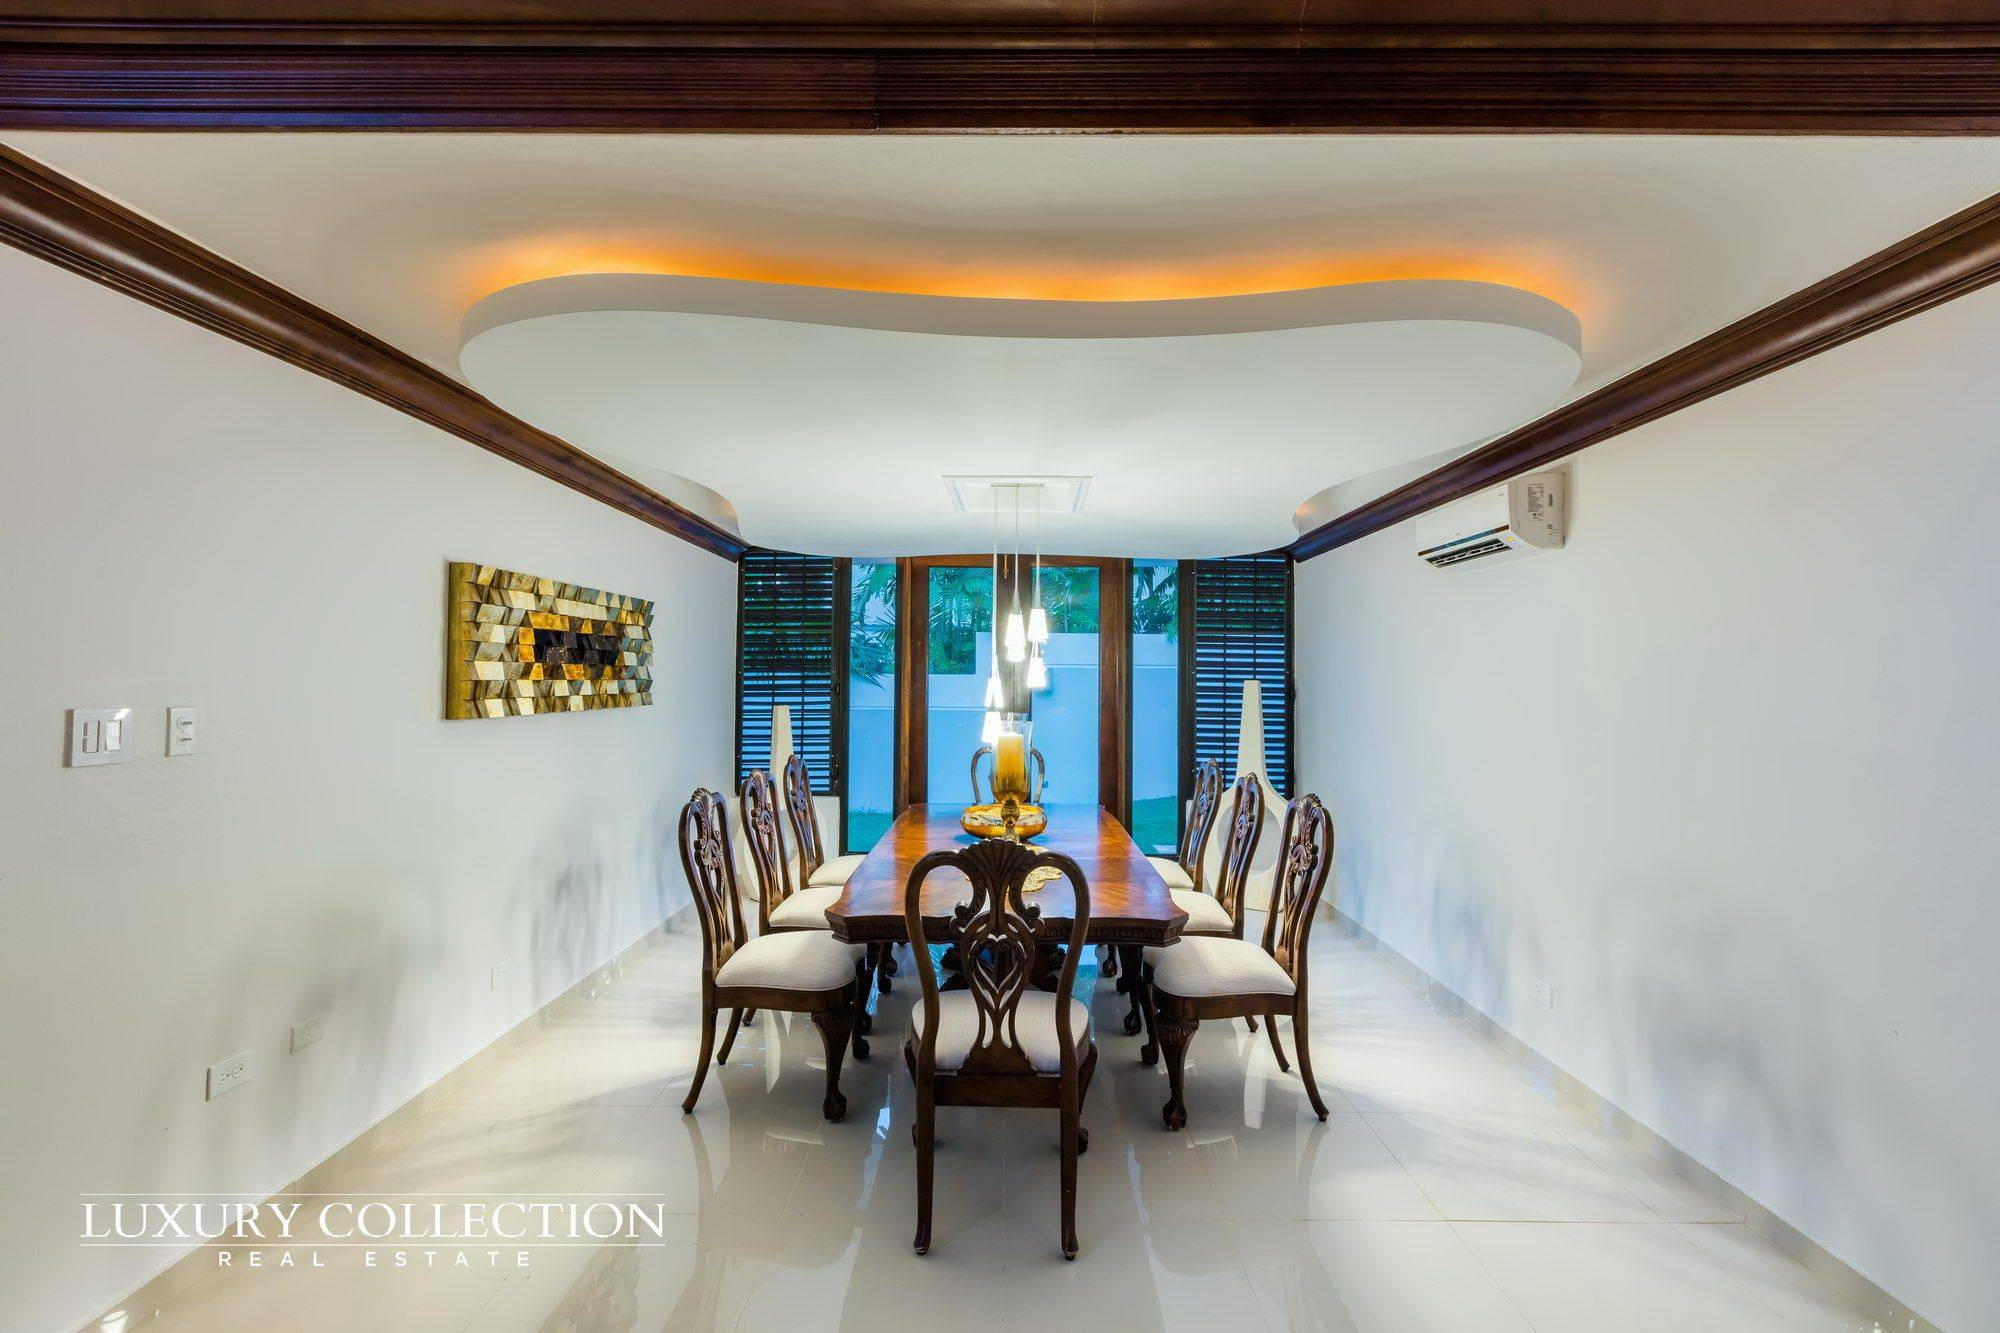 10 Luxury Collection La Colina Luxury Collection Real Estate